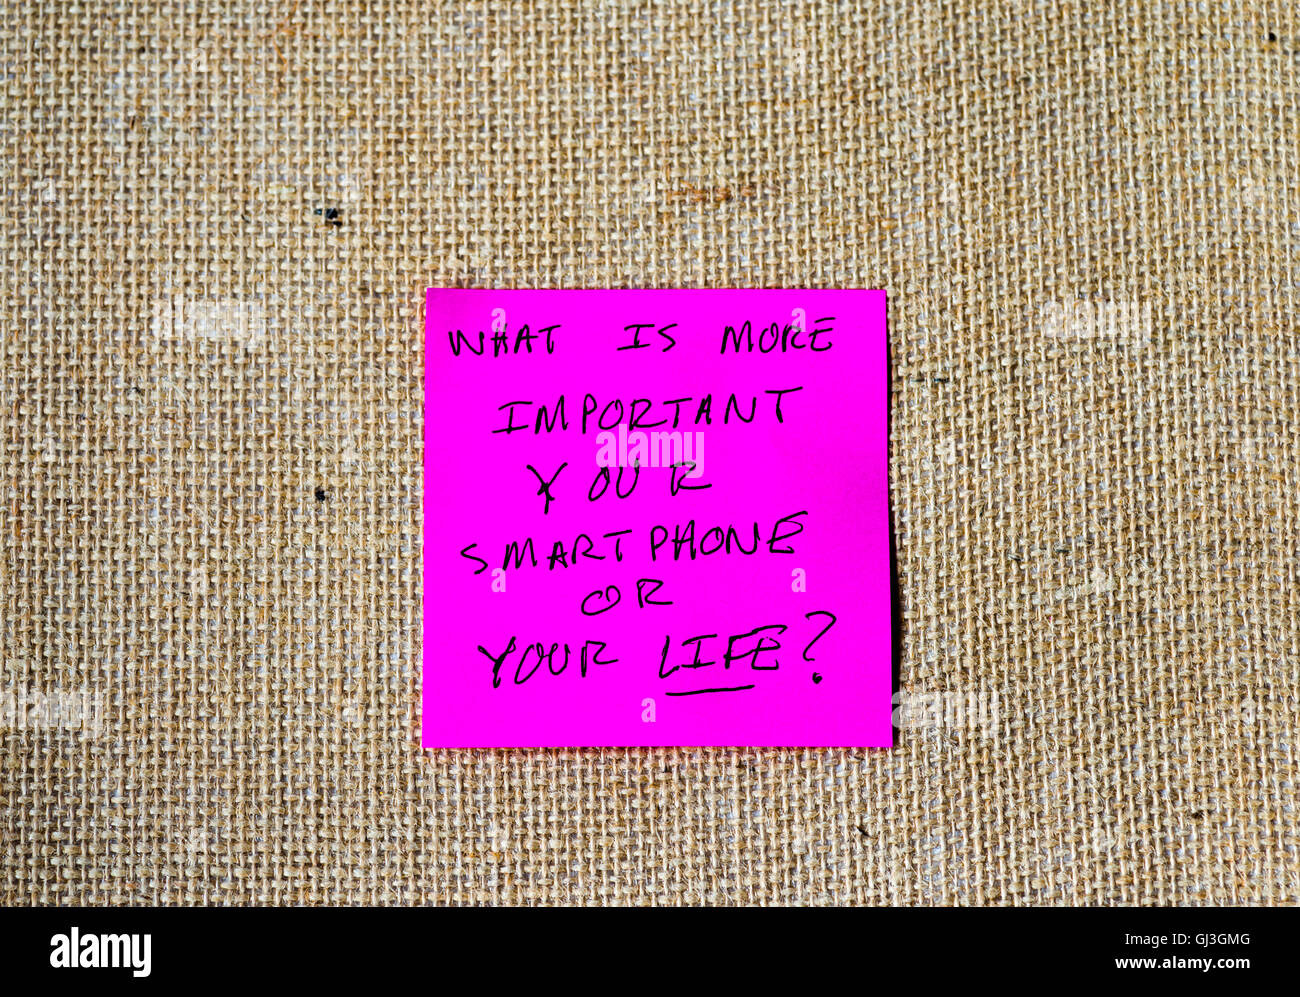 phrase 'what is more important, your smartphone or your life?' written on sticky notes - Stock Image